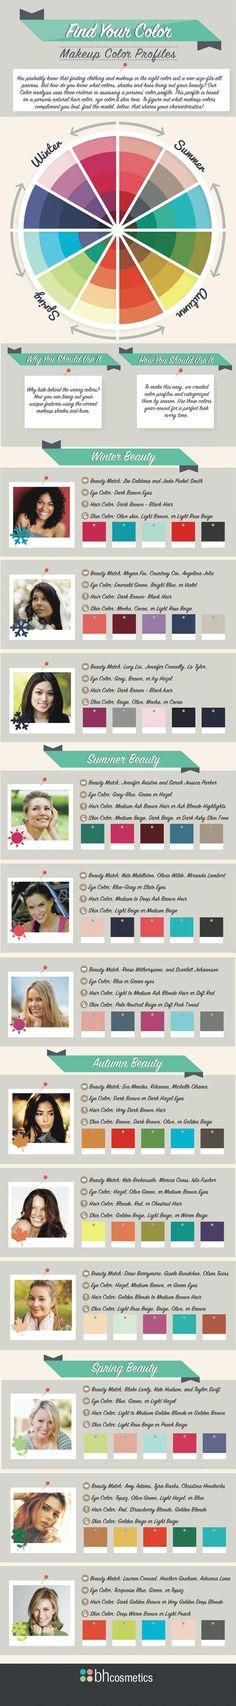 DIY Beauty - Amazing Makeup Color Profiles Infographic. Find the perfect makeup colors to match your face during each season.